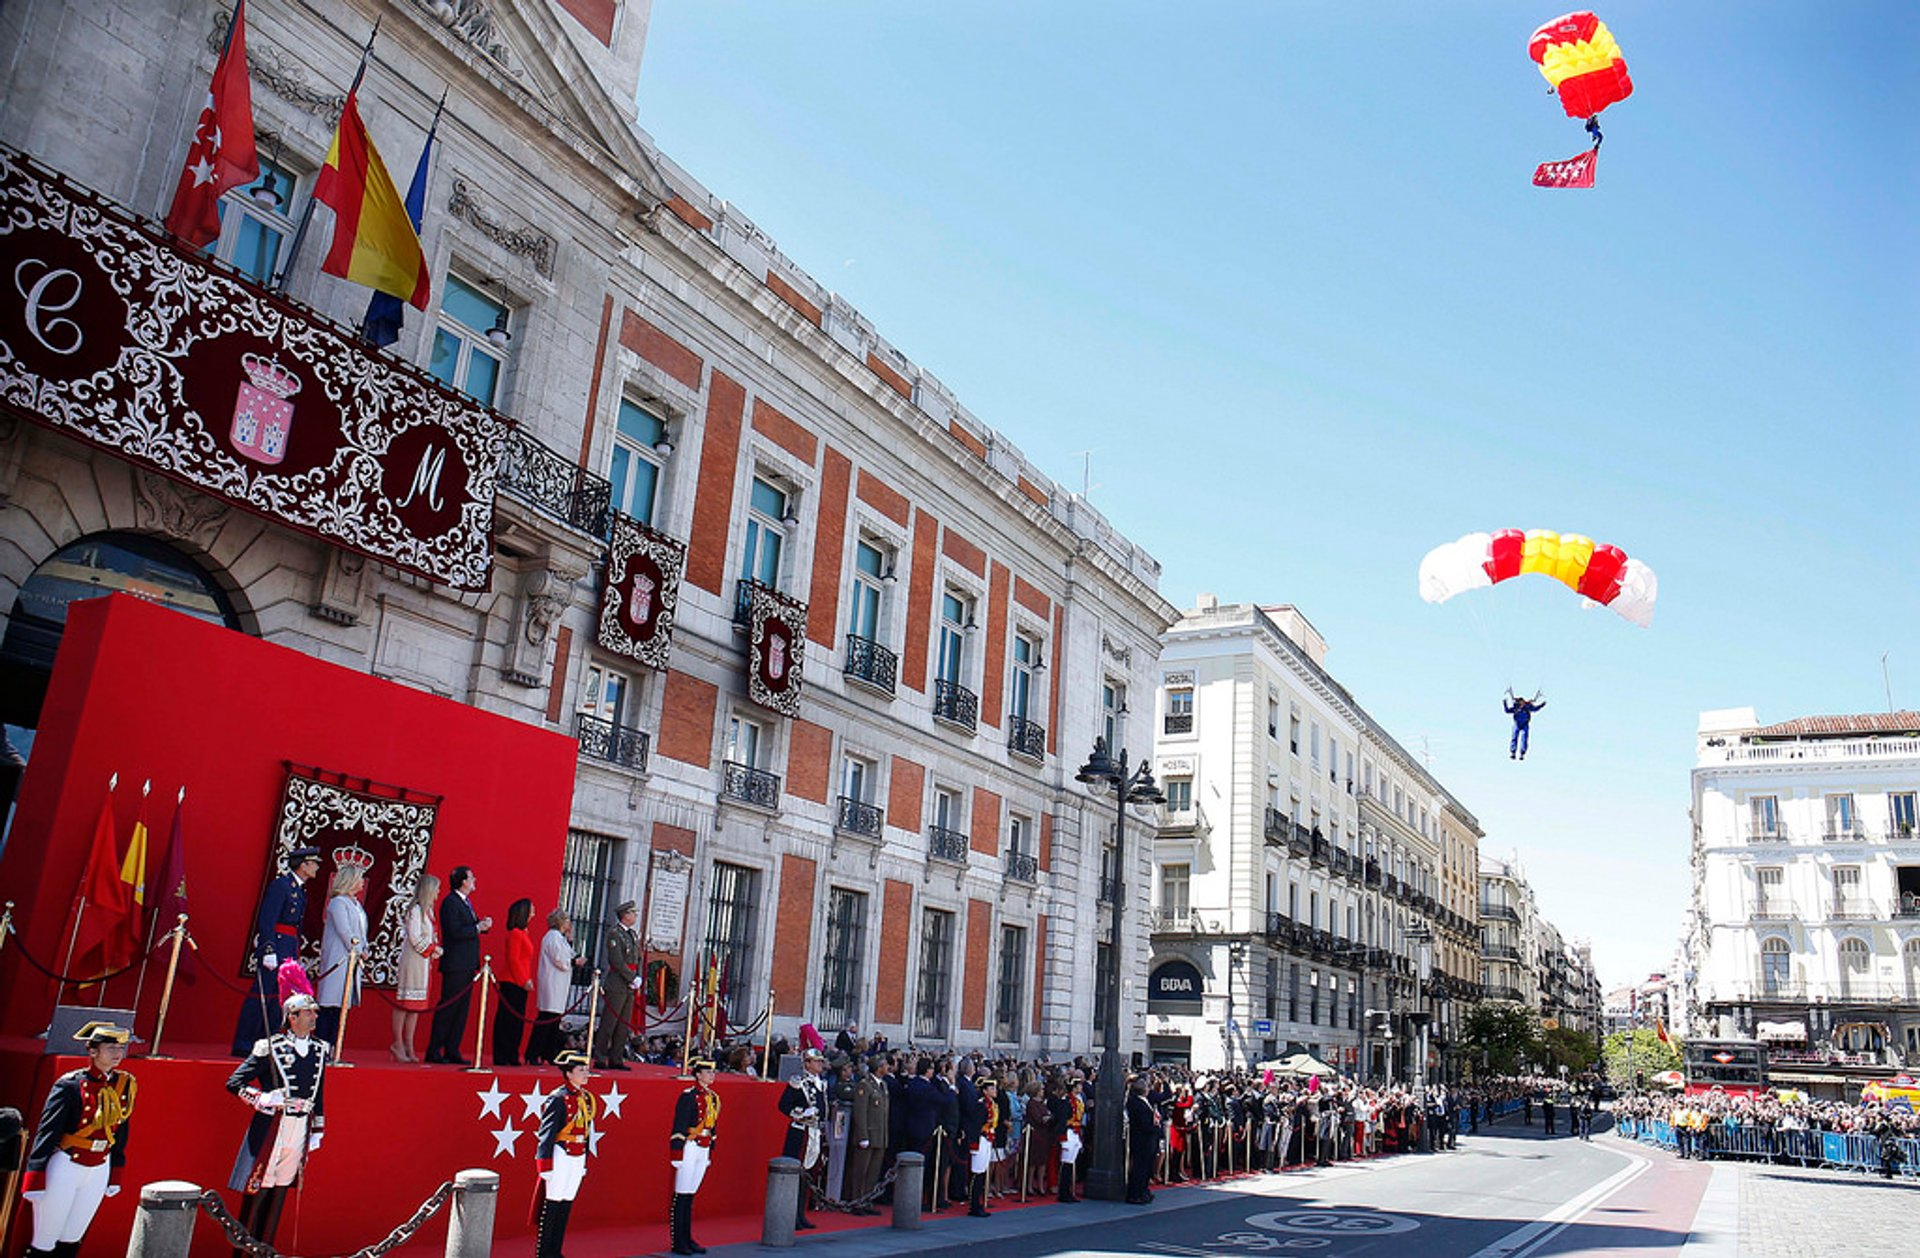 Best time for Fiesta Dos de Mayo (Day of Madrid Festival) in Madrid 2020